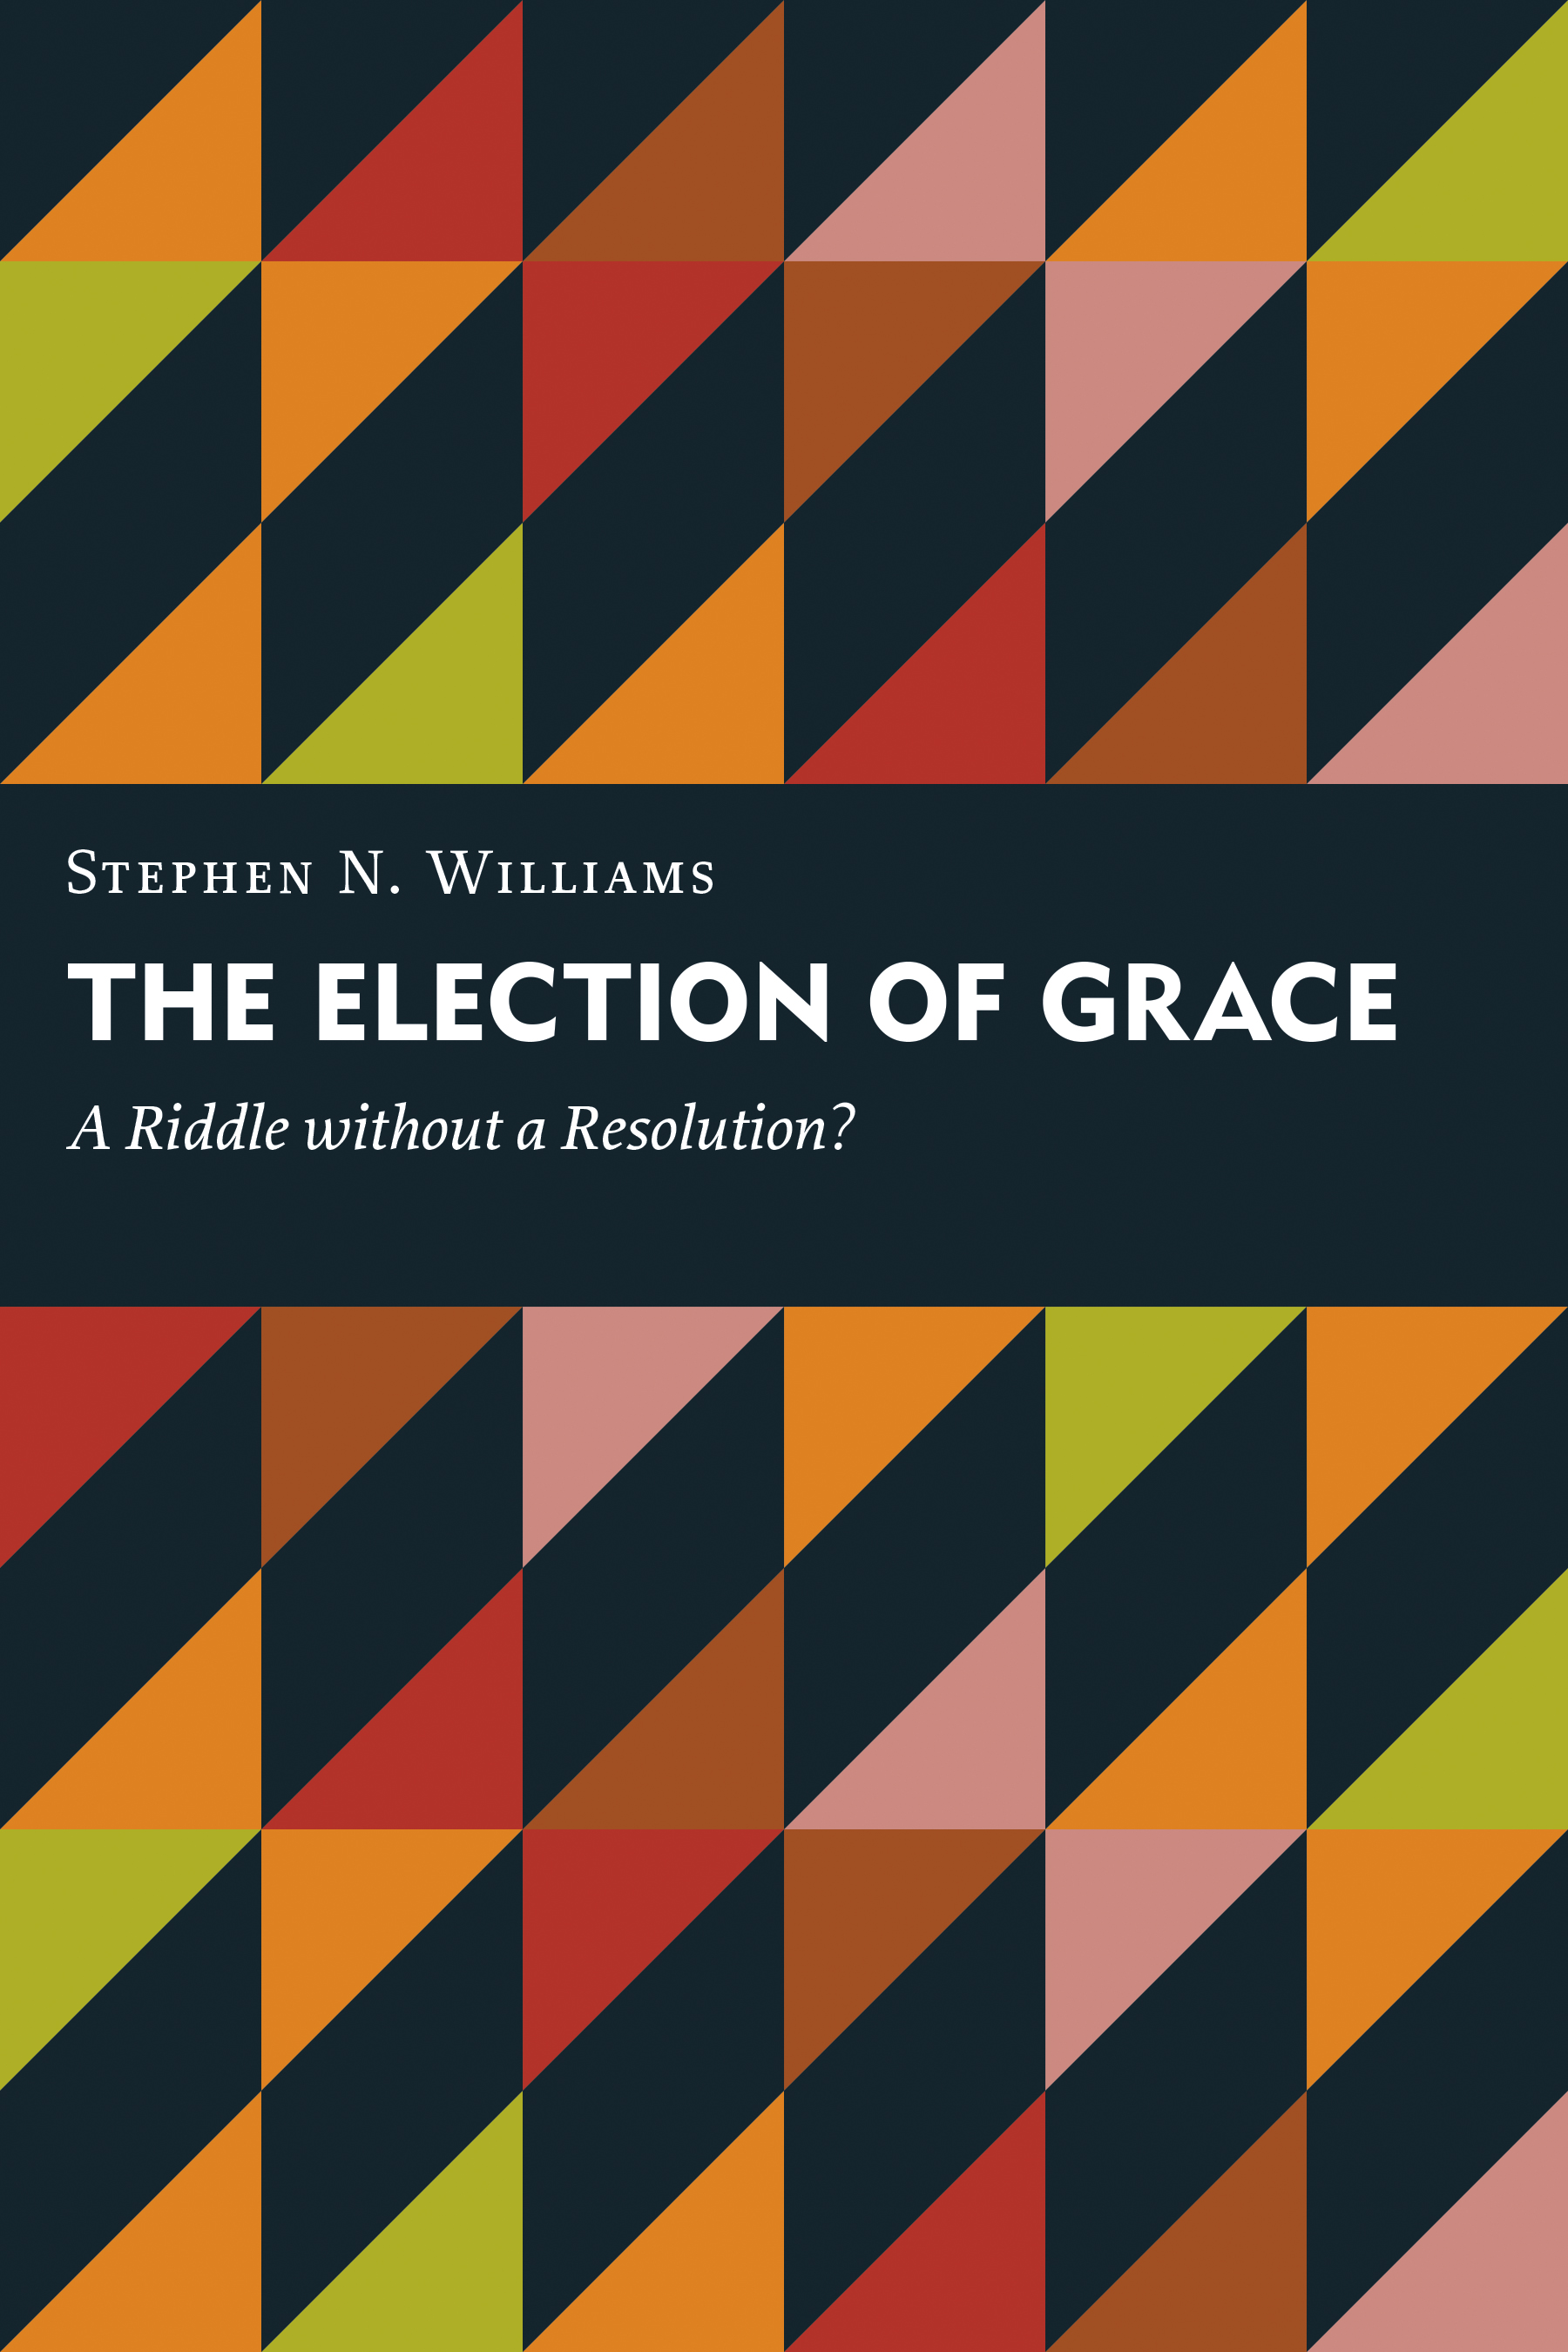 history of the film amazing grace theology religion essay If you have not read athanasius' on the incarnation, you should it is one of the most important books in the history of the church, and therefore in the history of.